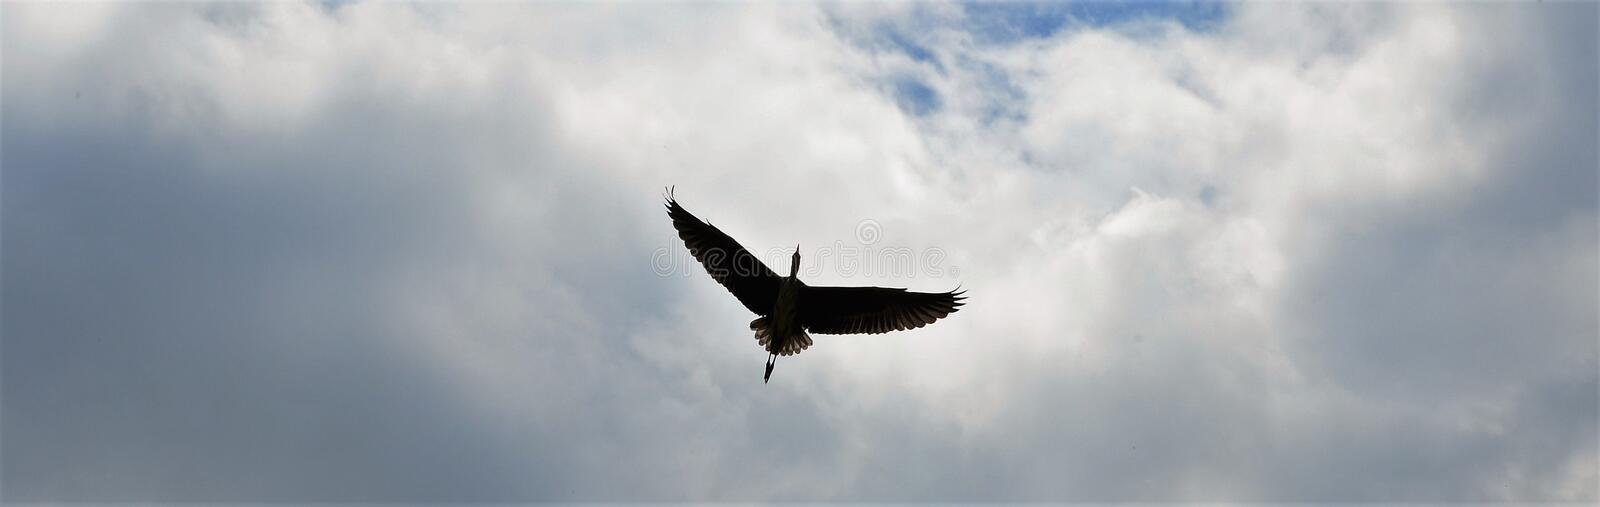 Vliegende reiger boven Zwolle royalty free stock images